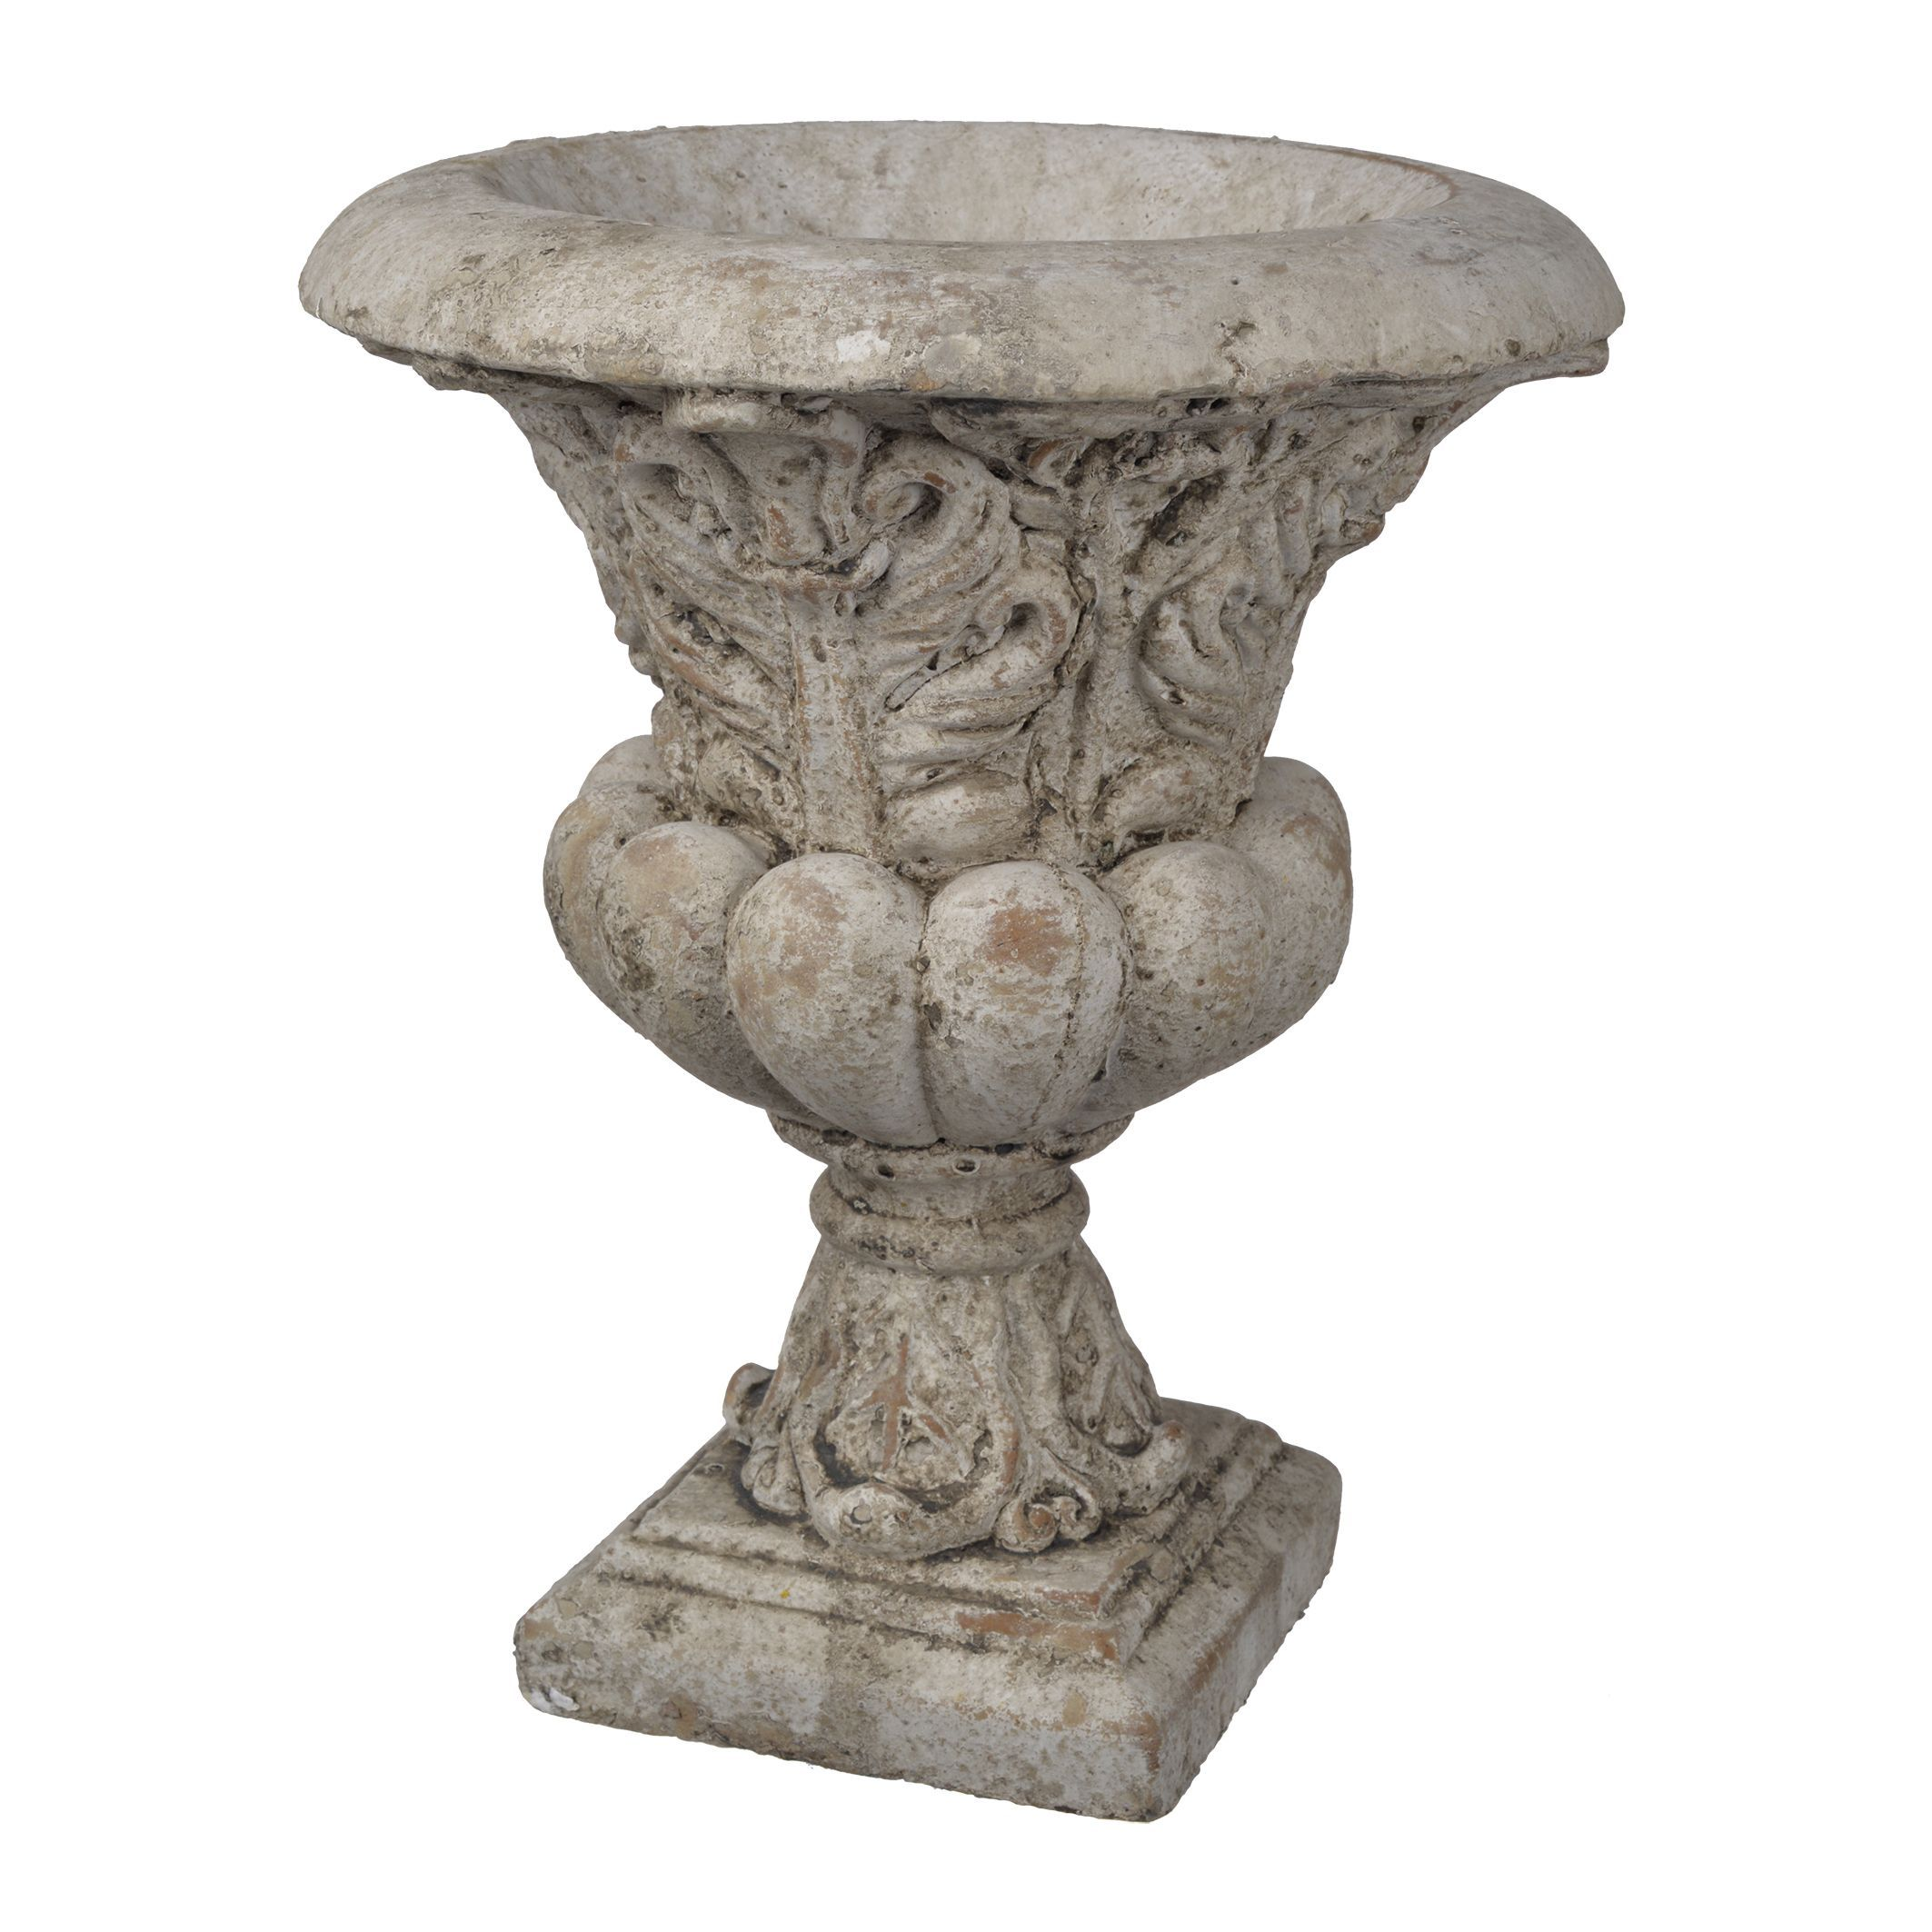 f white Beige Cement URN D10X12 URN A and B Home D1250